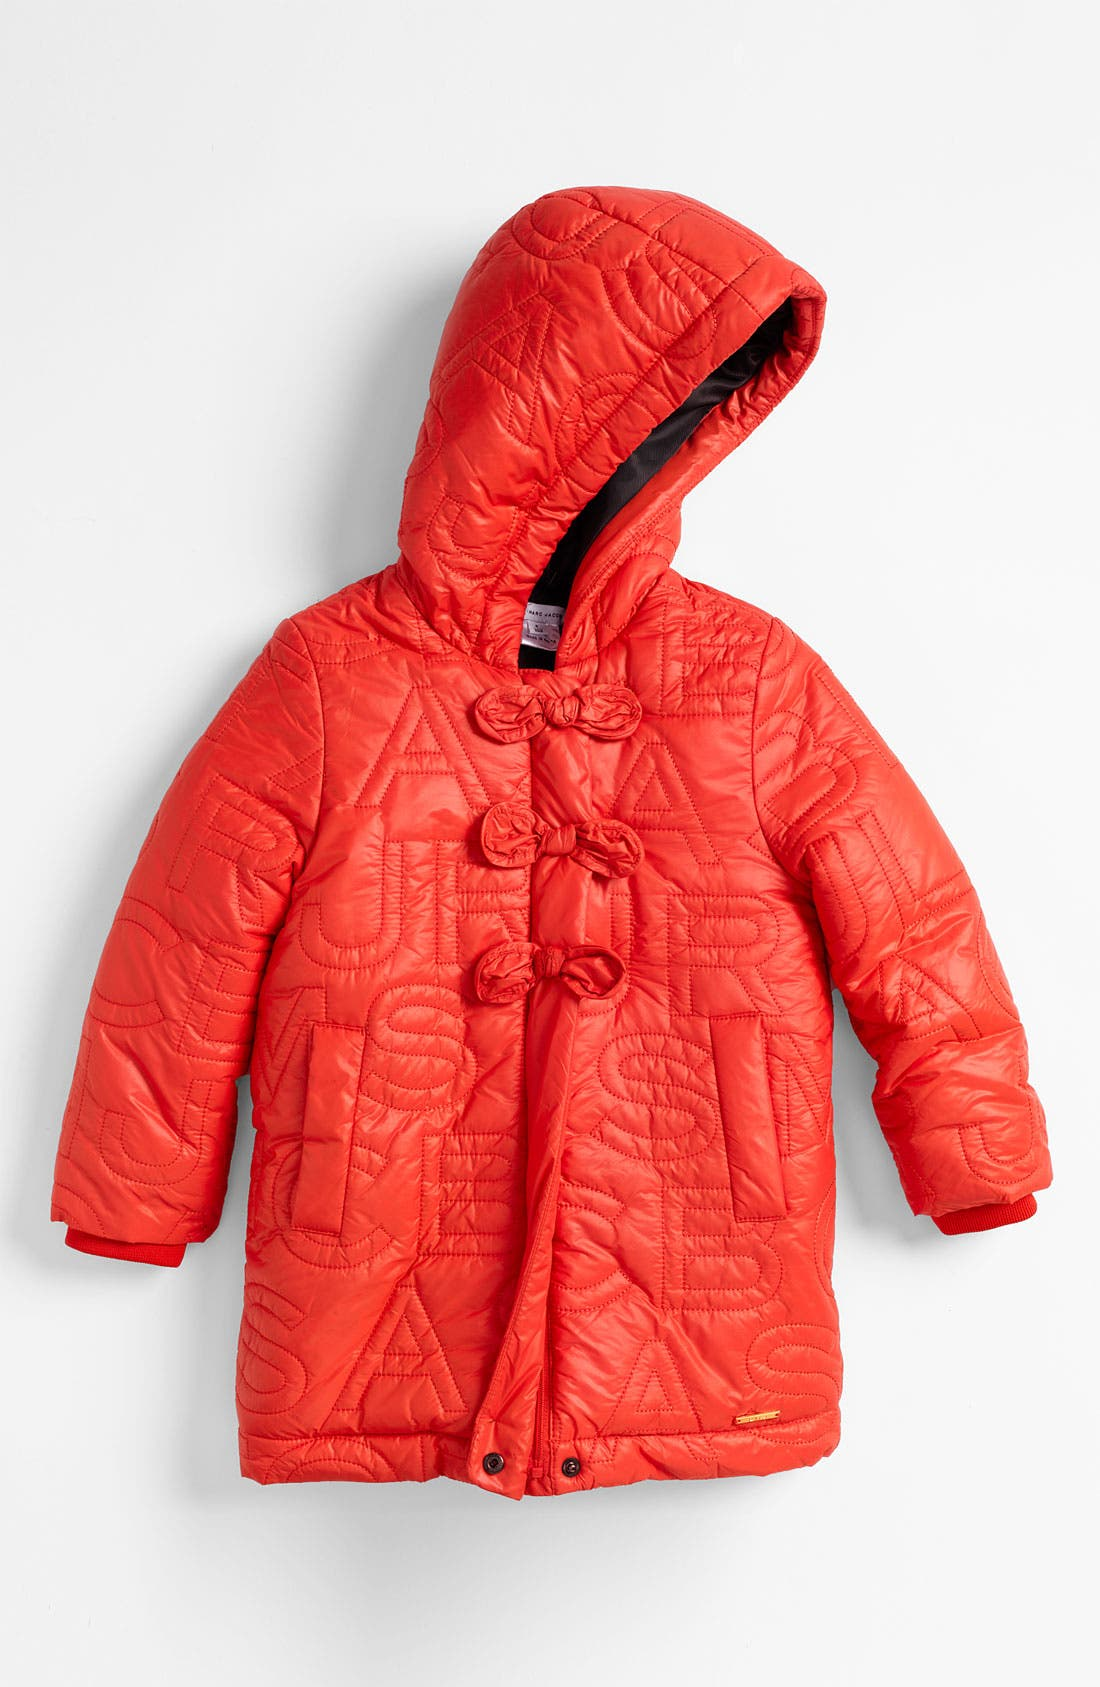 Alternate Image 1 Selected - LITTLE MARC JACOBS Embroidered Puffer Jacket (Little Girls & Big Girls)